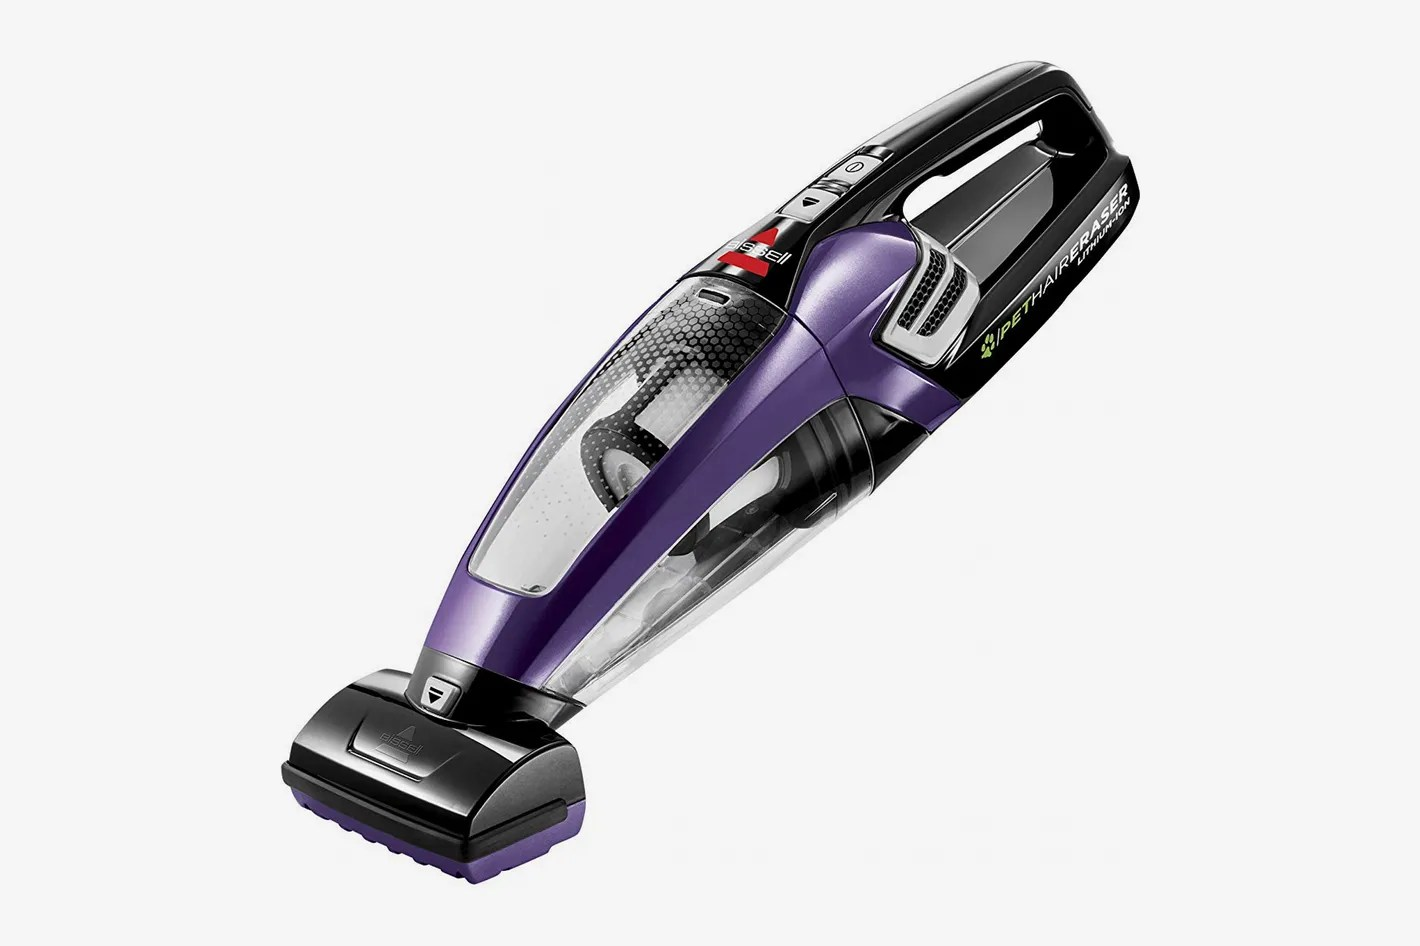 Sofa Vacuum Cleaner Brush 11 Best Handheld Vacuums Of 2019